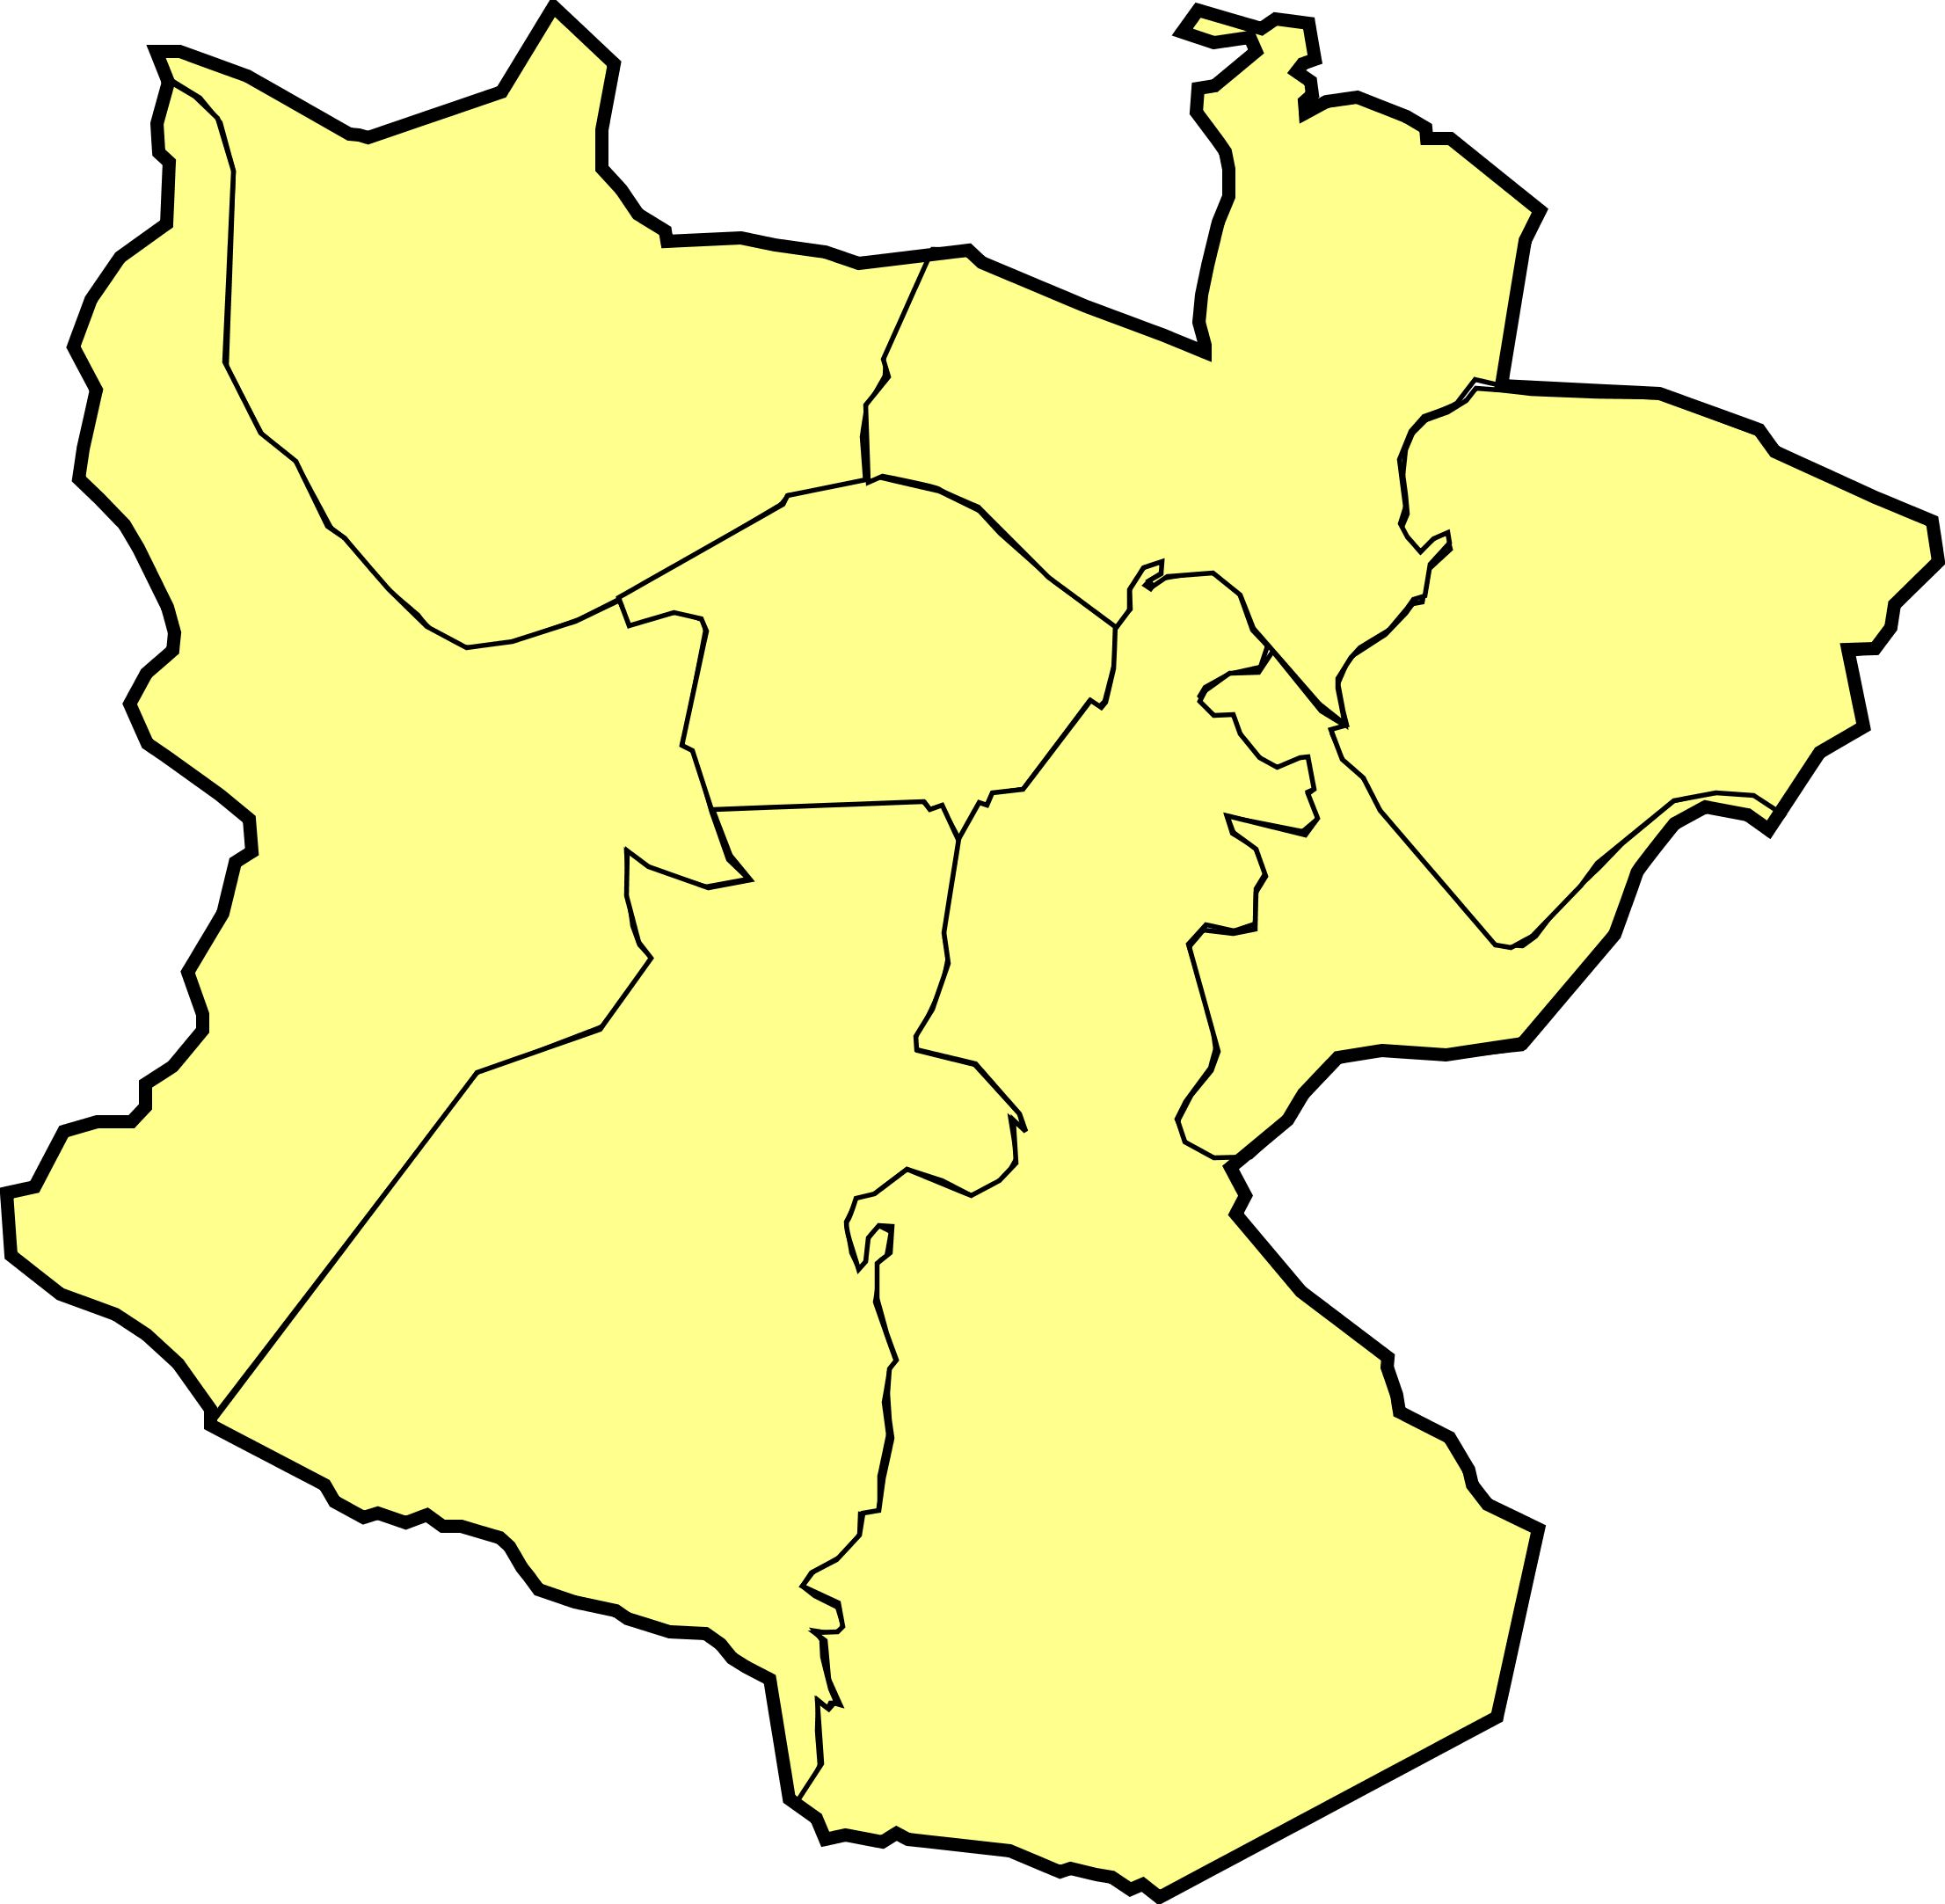 Blank map of Bilbao's districts 2008